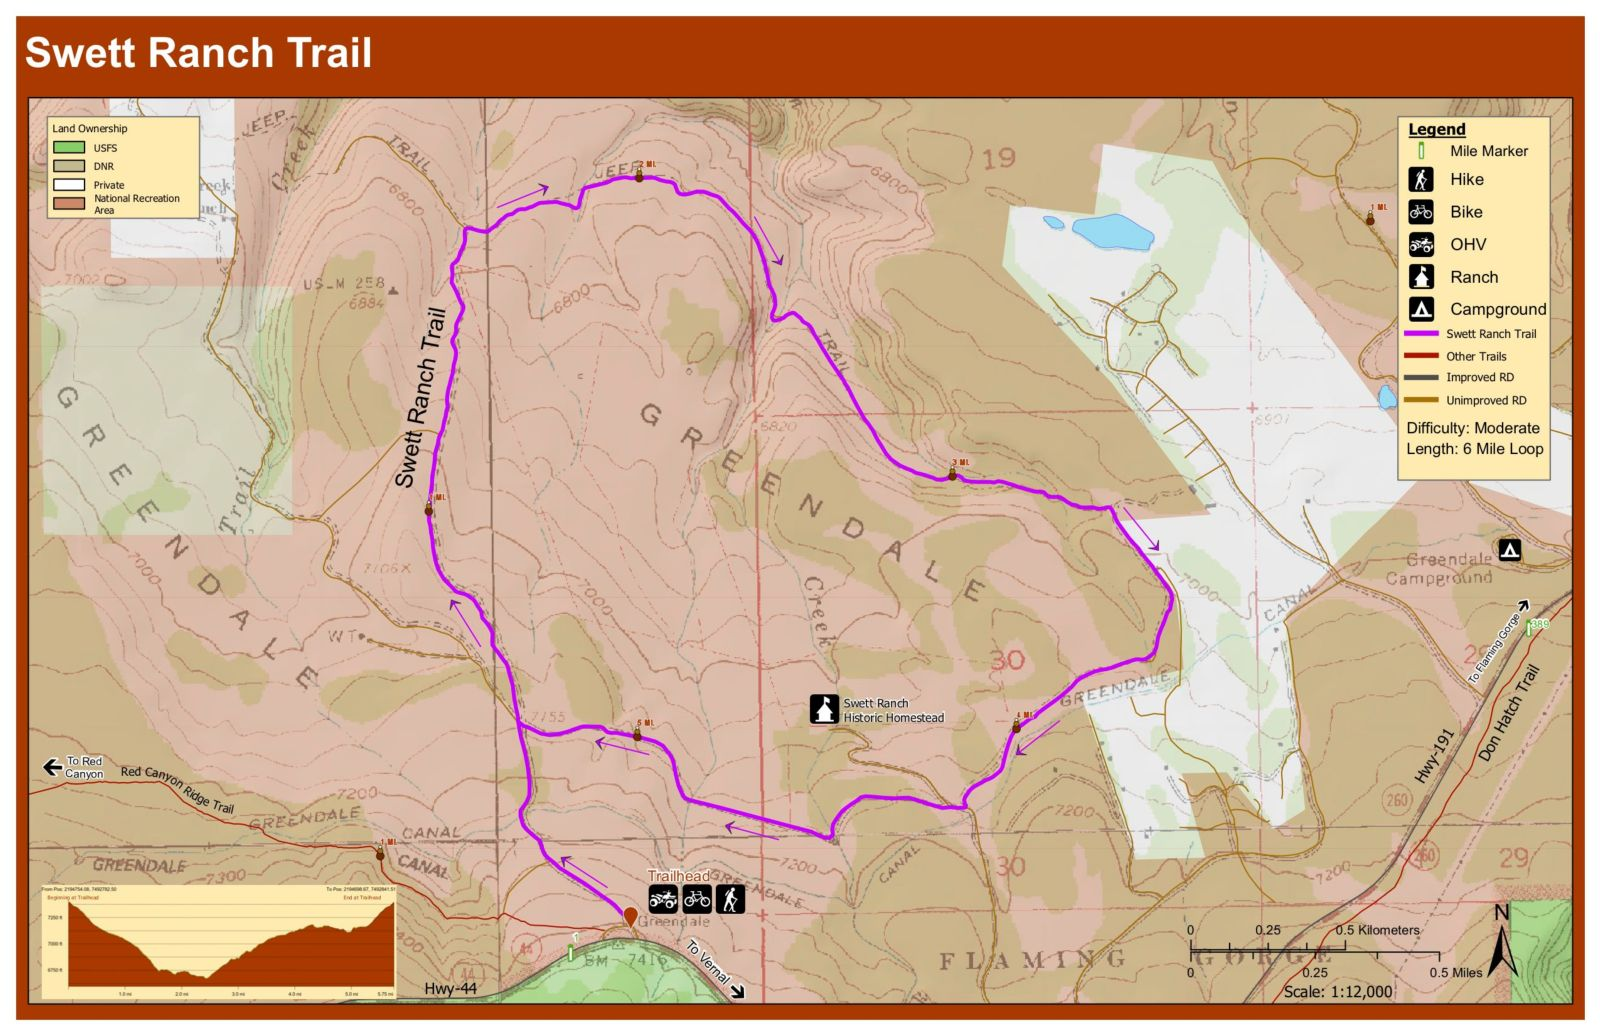 Swett Ranch Trail Map - Flaming Gorge